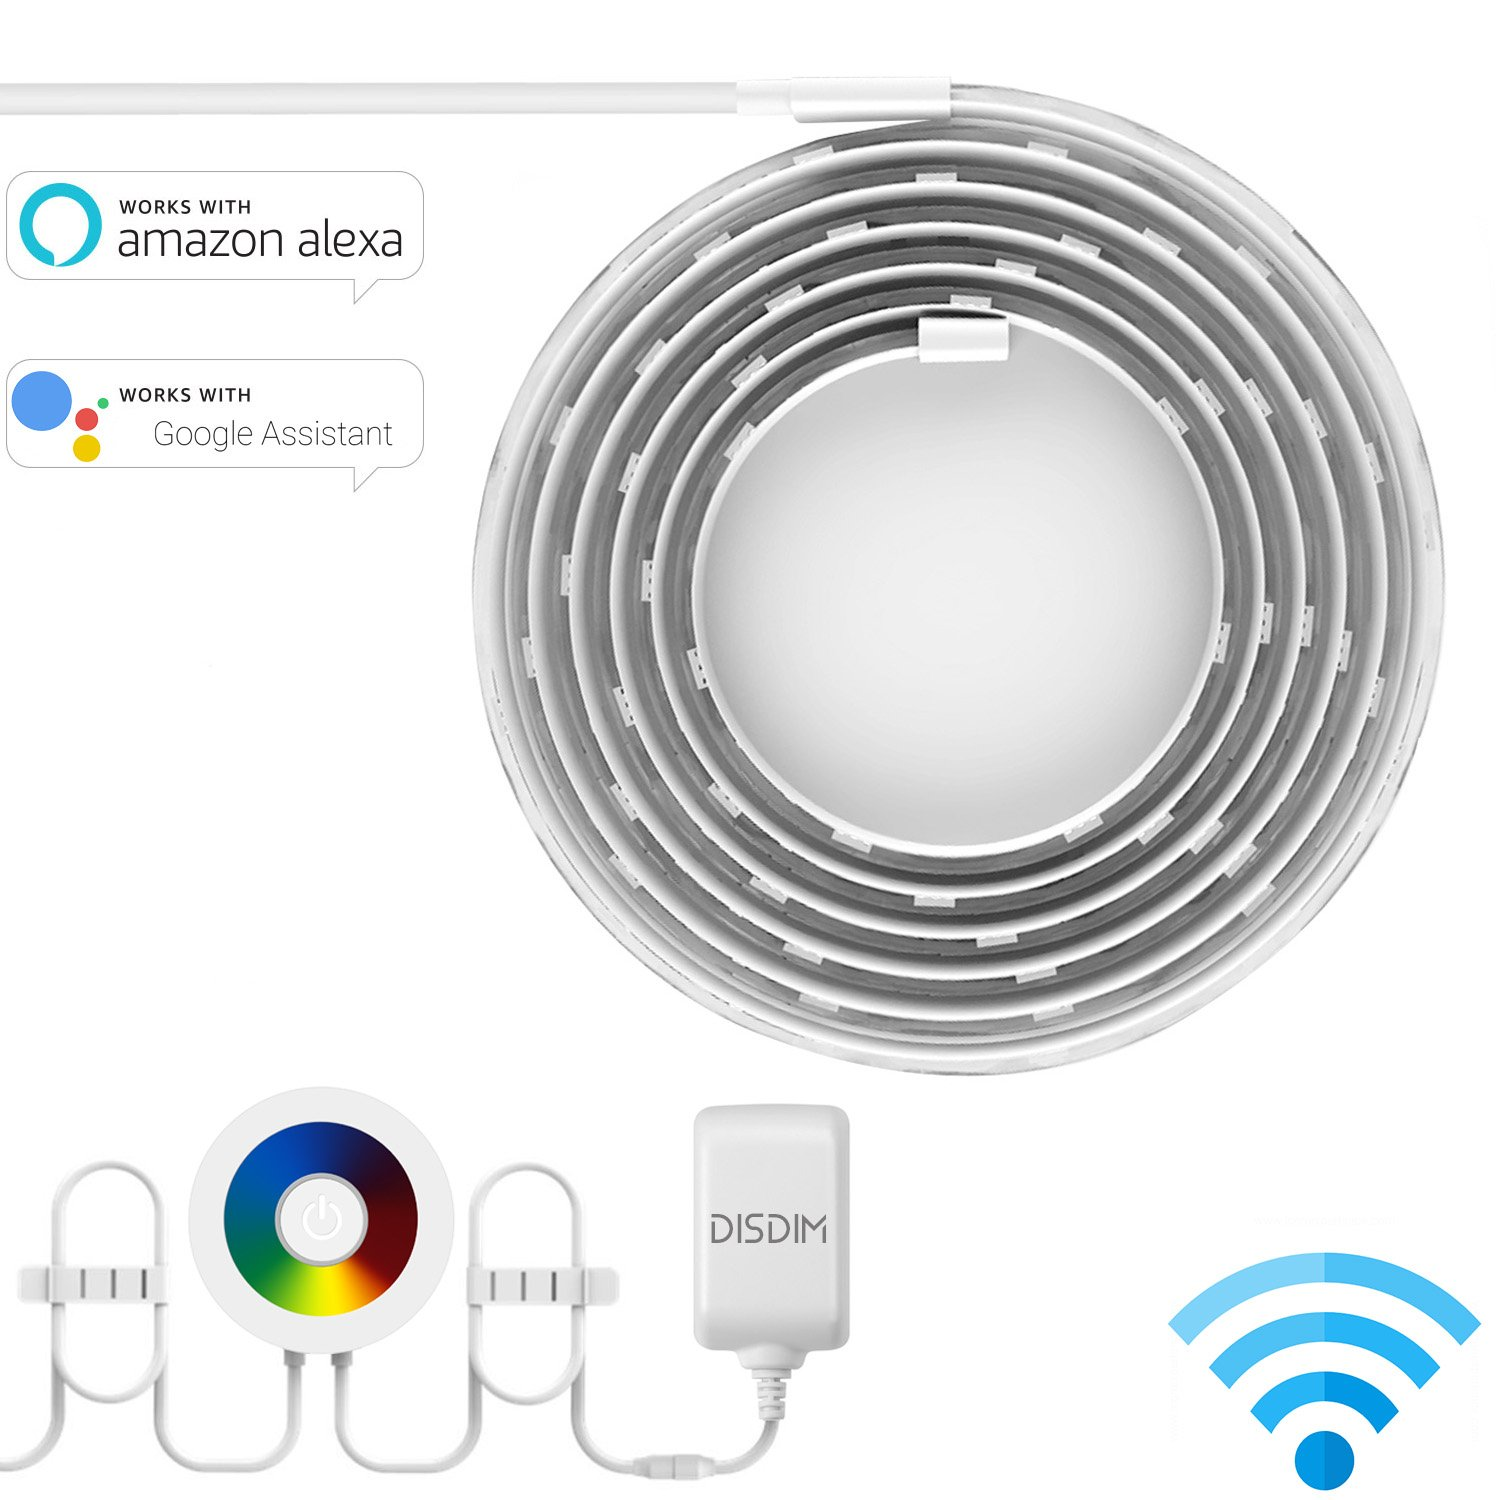 Smart LED Light Strip, DISDIM Multicolor WiFi Wireless RGB Strip Lights Smart Phone Controlled Waterproof IP65 LED Rope Lighting, DIY Kit Easy Install Working with Amazon Alexa and Google Home